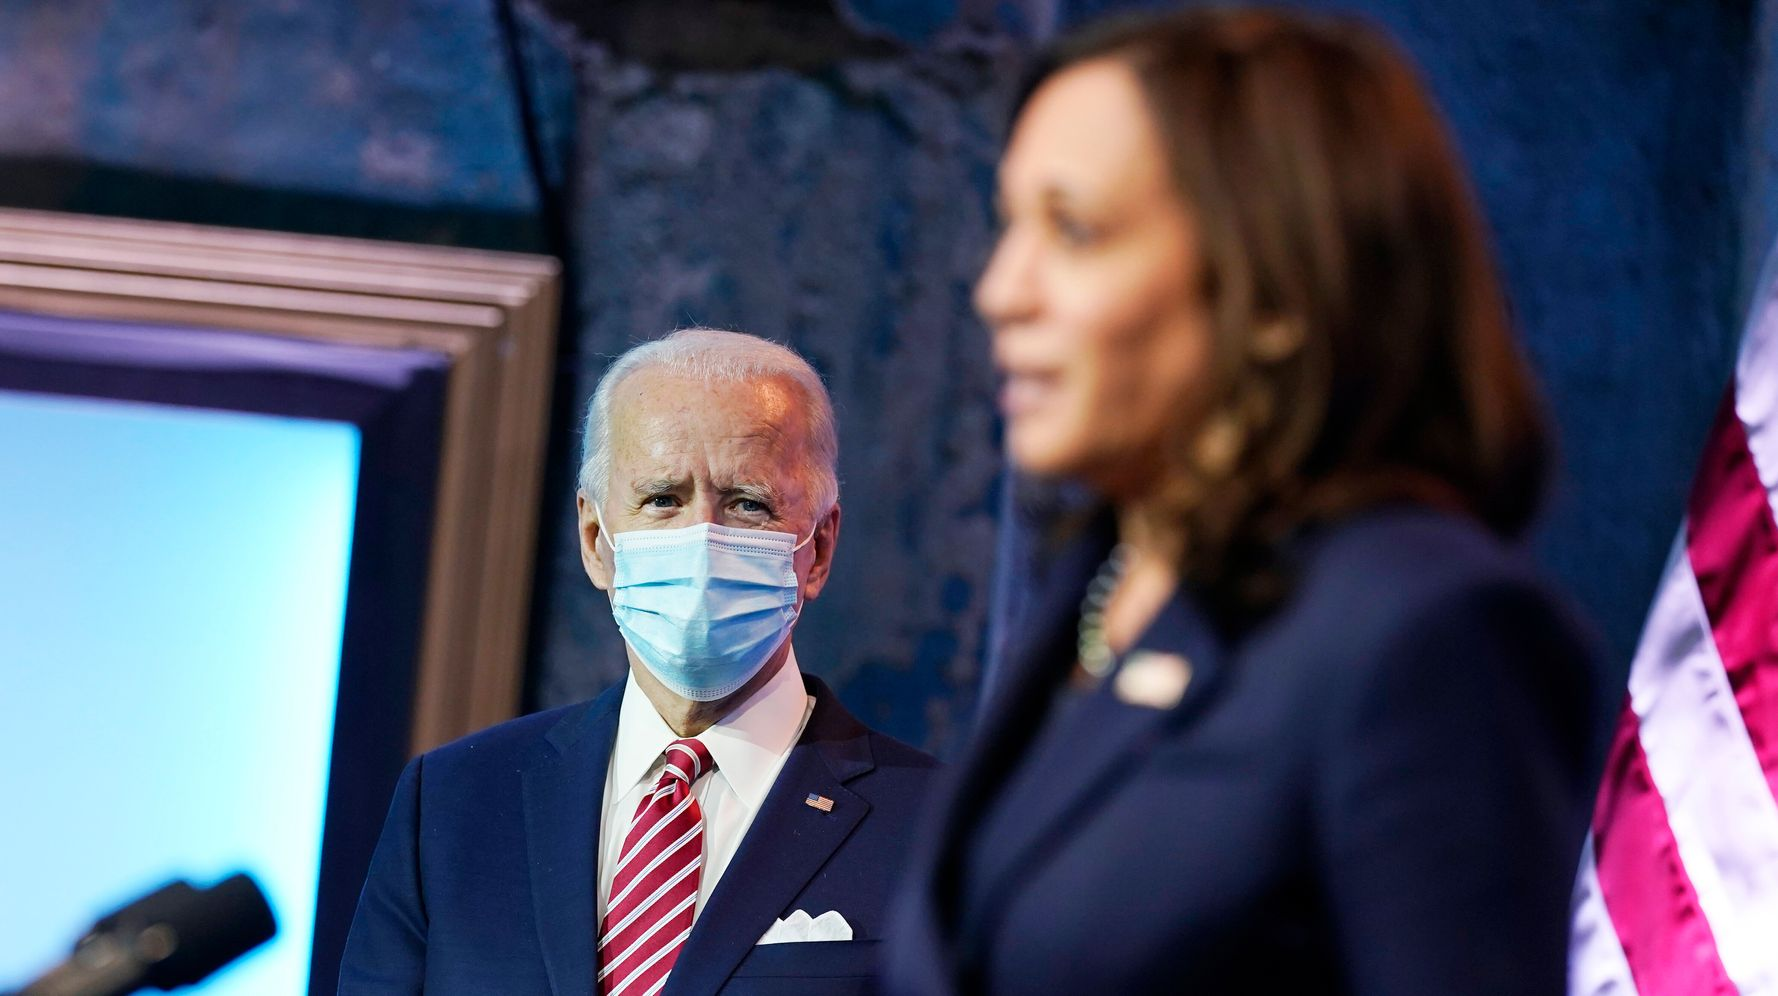 Joe Biden Gets Modestly Positive Initial Marks On Coronavirus